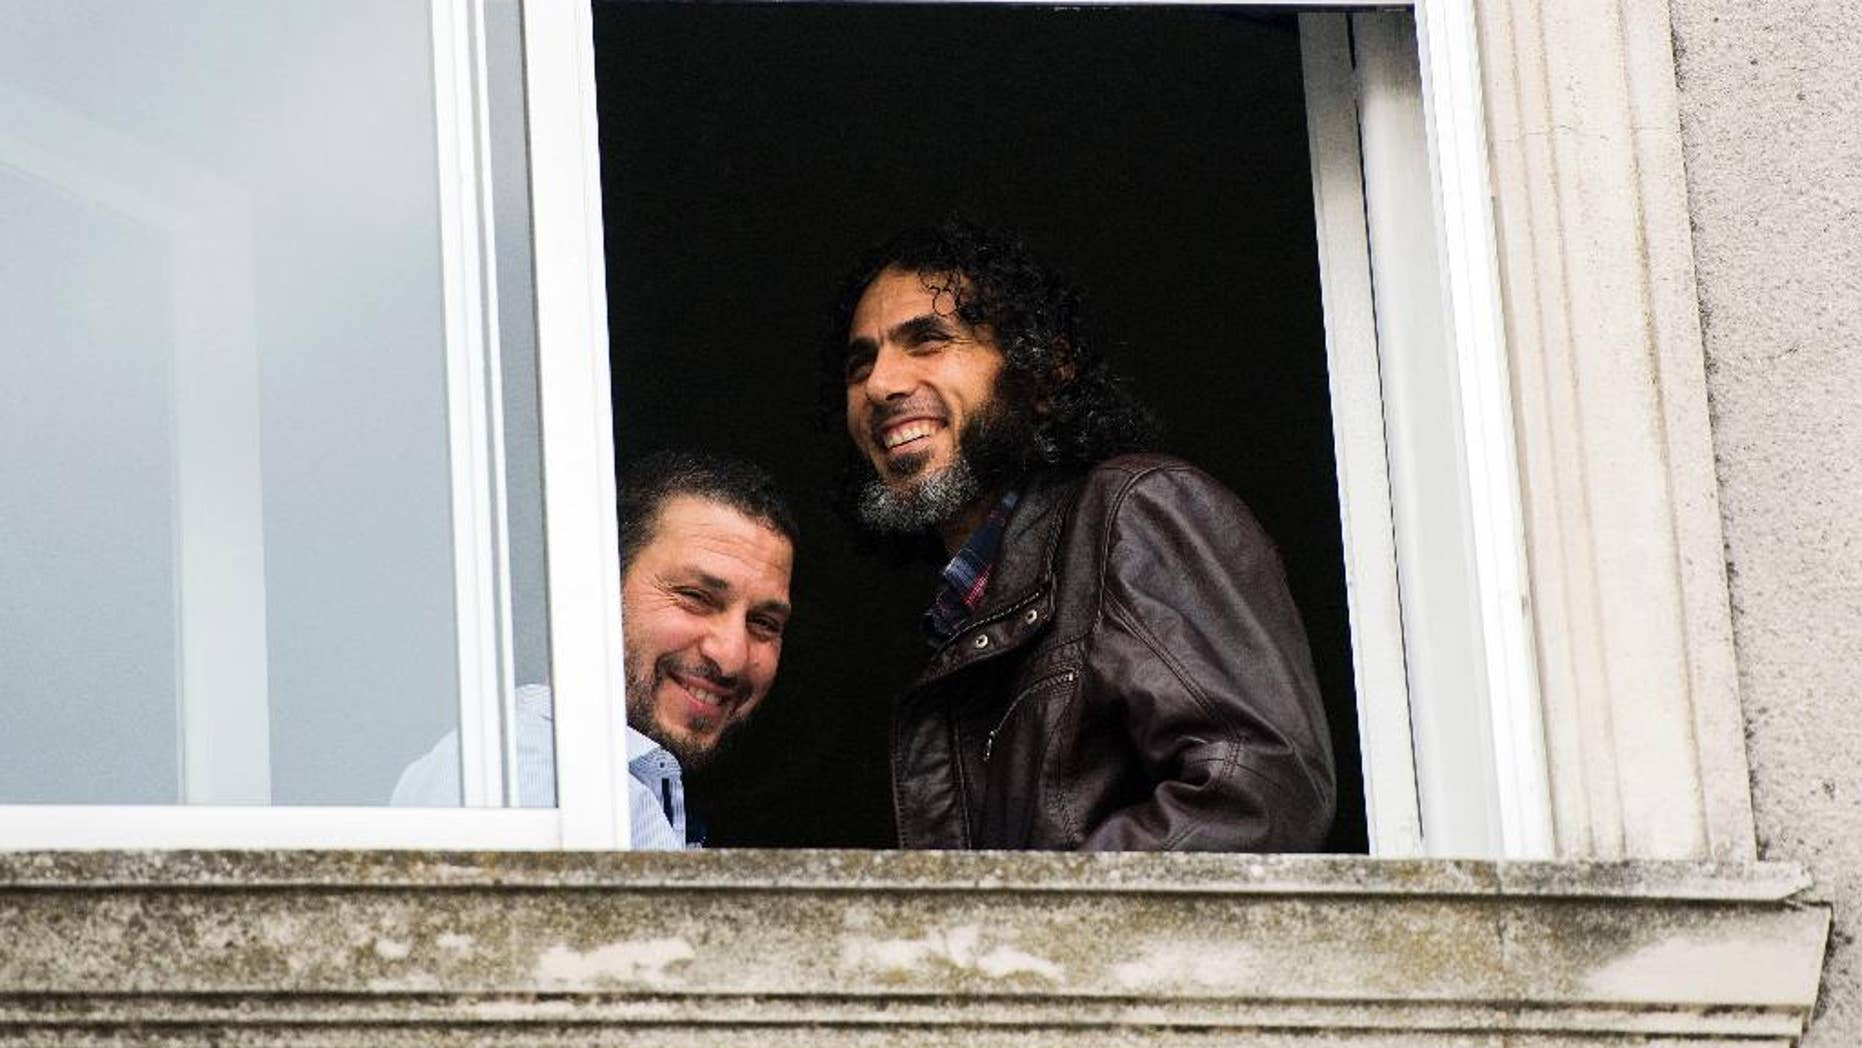 FILE - In this June 5, 2015 file photo, Abu Wa'el Dhiab, from Syria, right, and Adel bin Muhammad El Ouerghi, of Tunisia, both freed Guantanamo Bay detainees, stand next to the window of their shared home in Montevideo, Uruguay. Dhiab who went missing for weeks and later resurfaced in Venezuela has now returned to Uruguay, authorities in the South American country said Tuesday, Aug. 30, 2016.  (AP Photo/Matilde Campodonico, File)